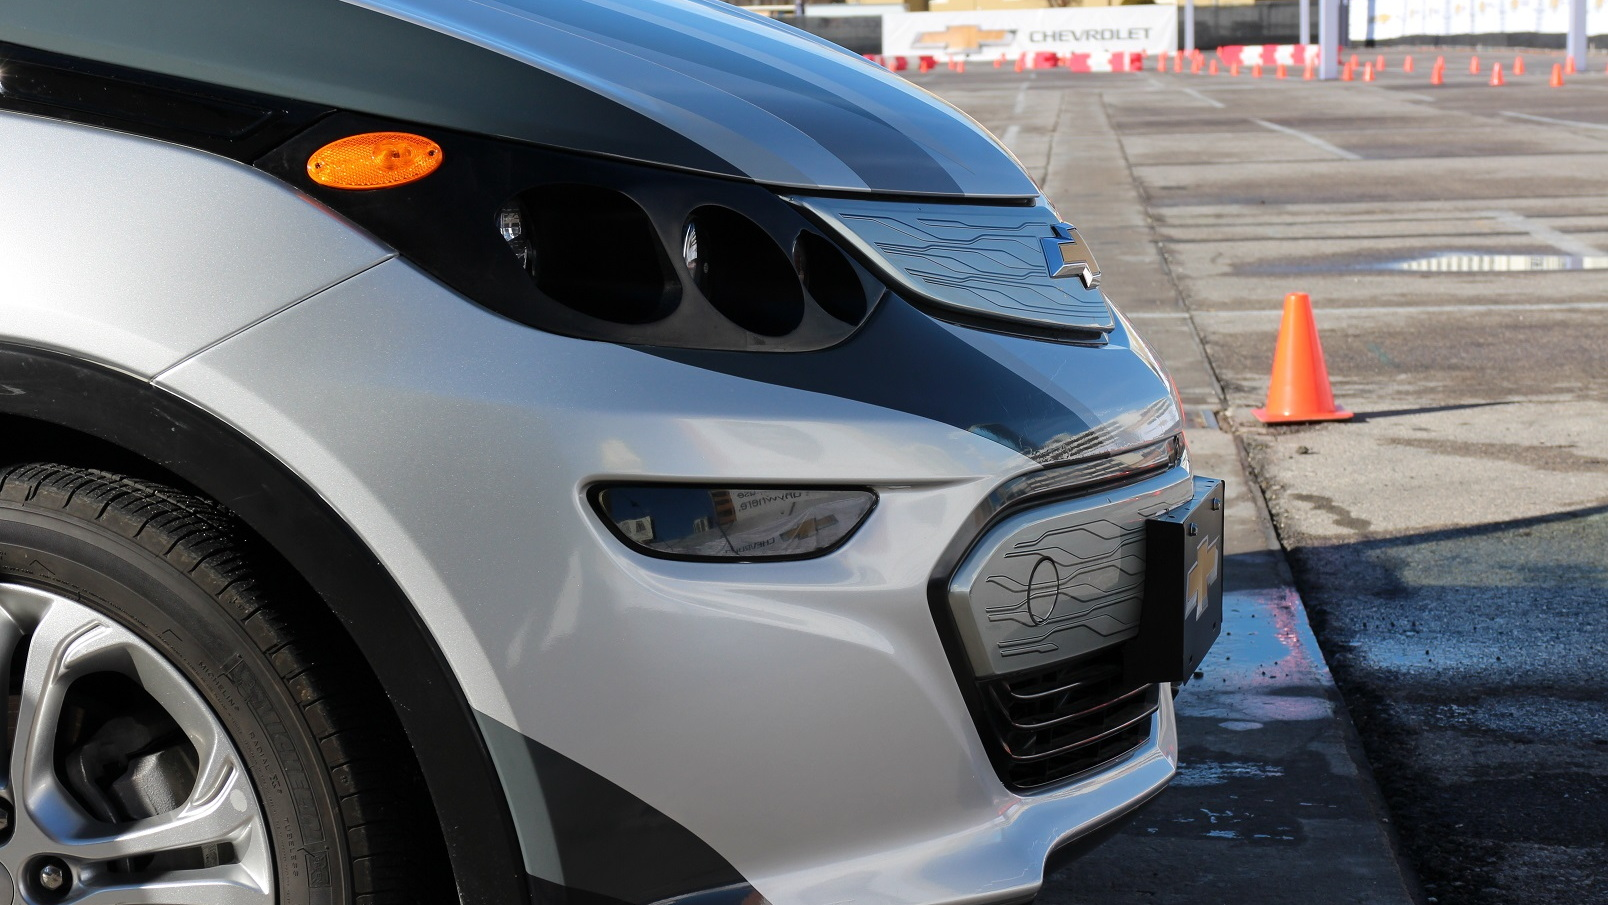 Engineering development version of Chevrolet Bolt EV, Las Vegas, Jan 2016